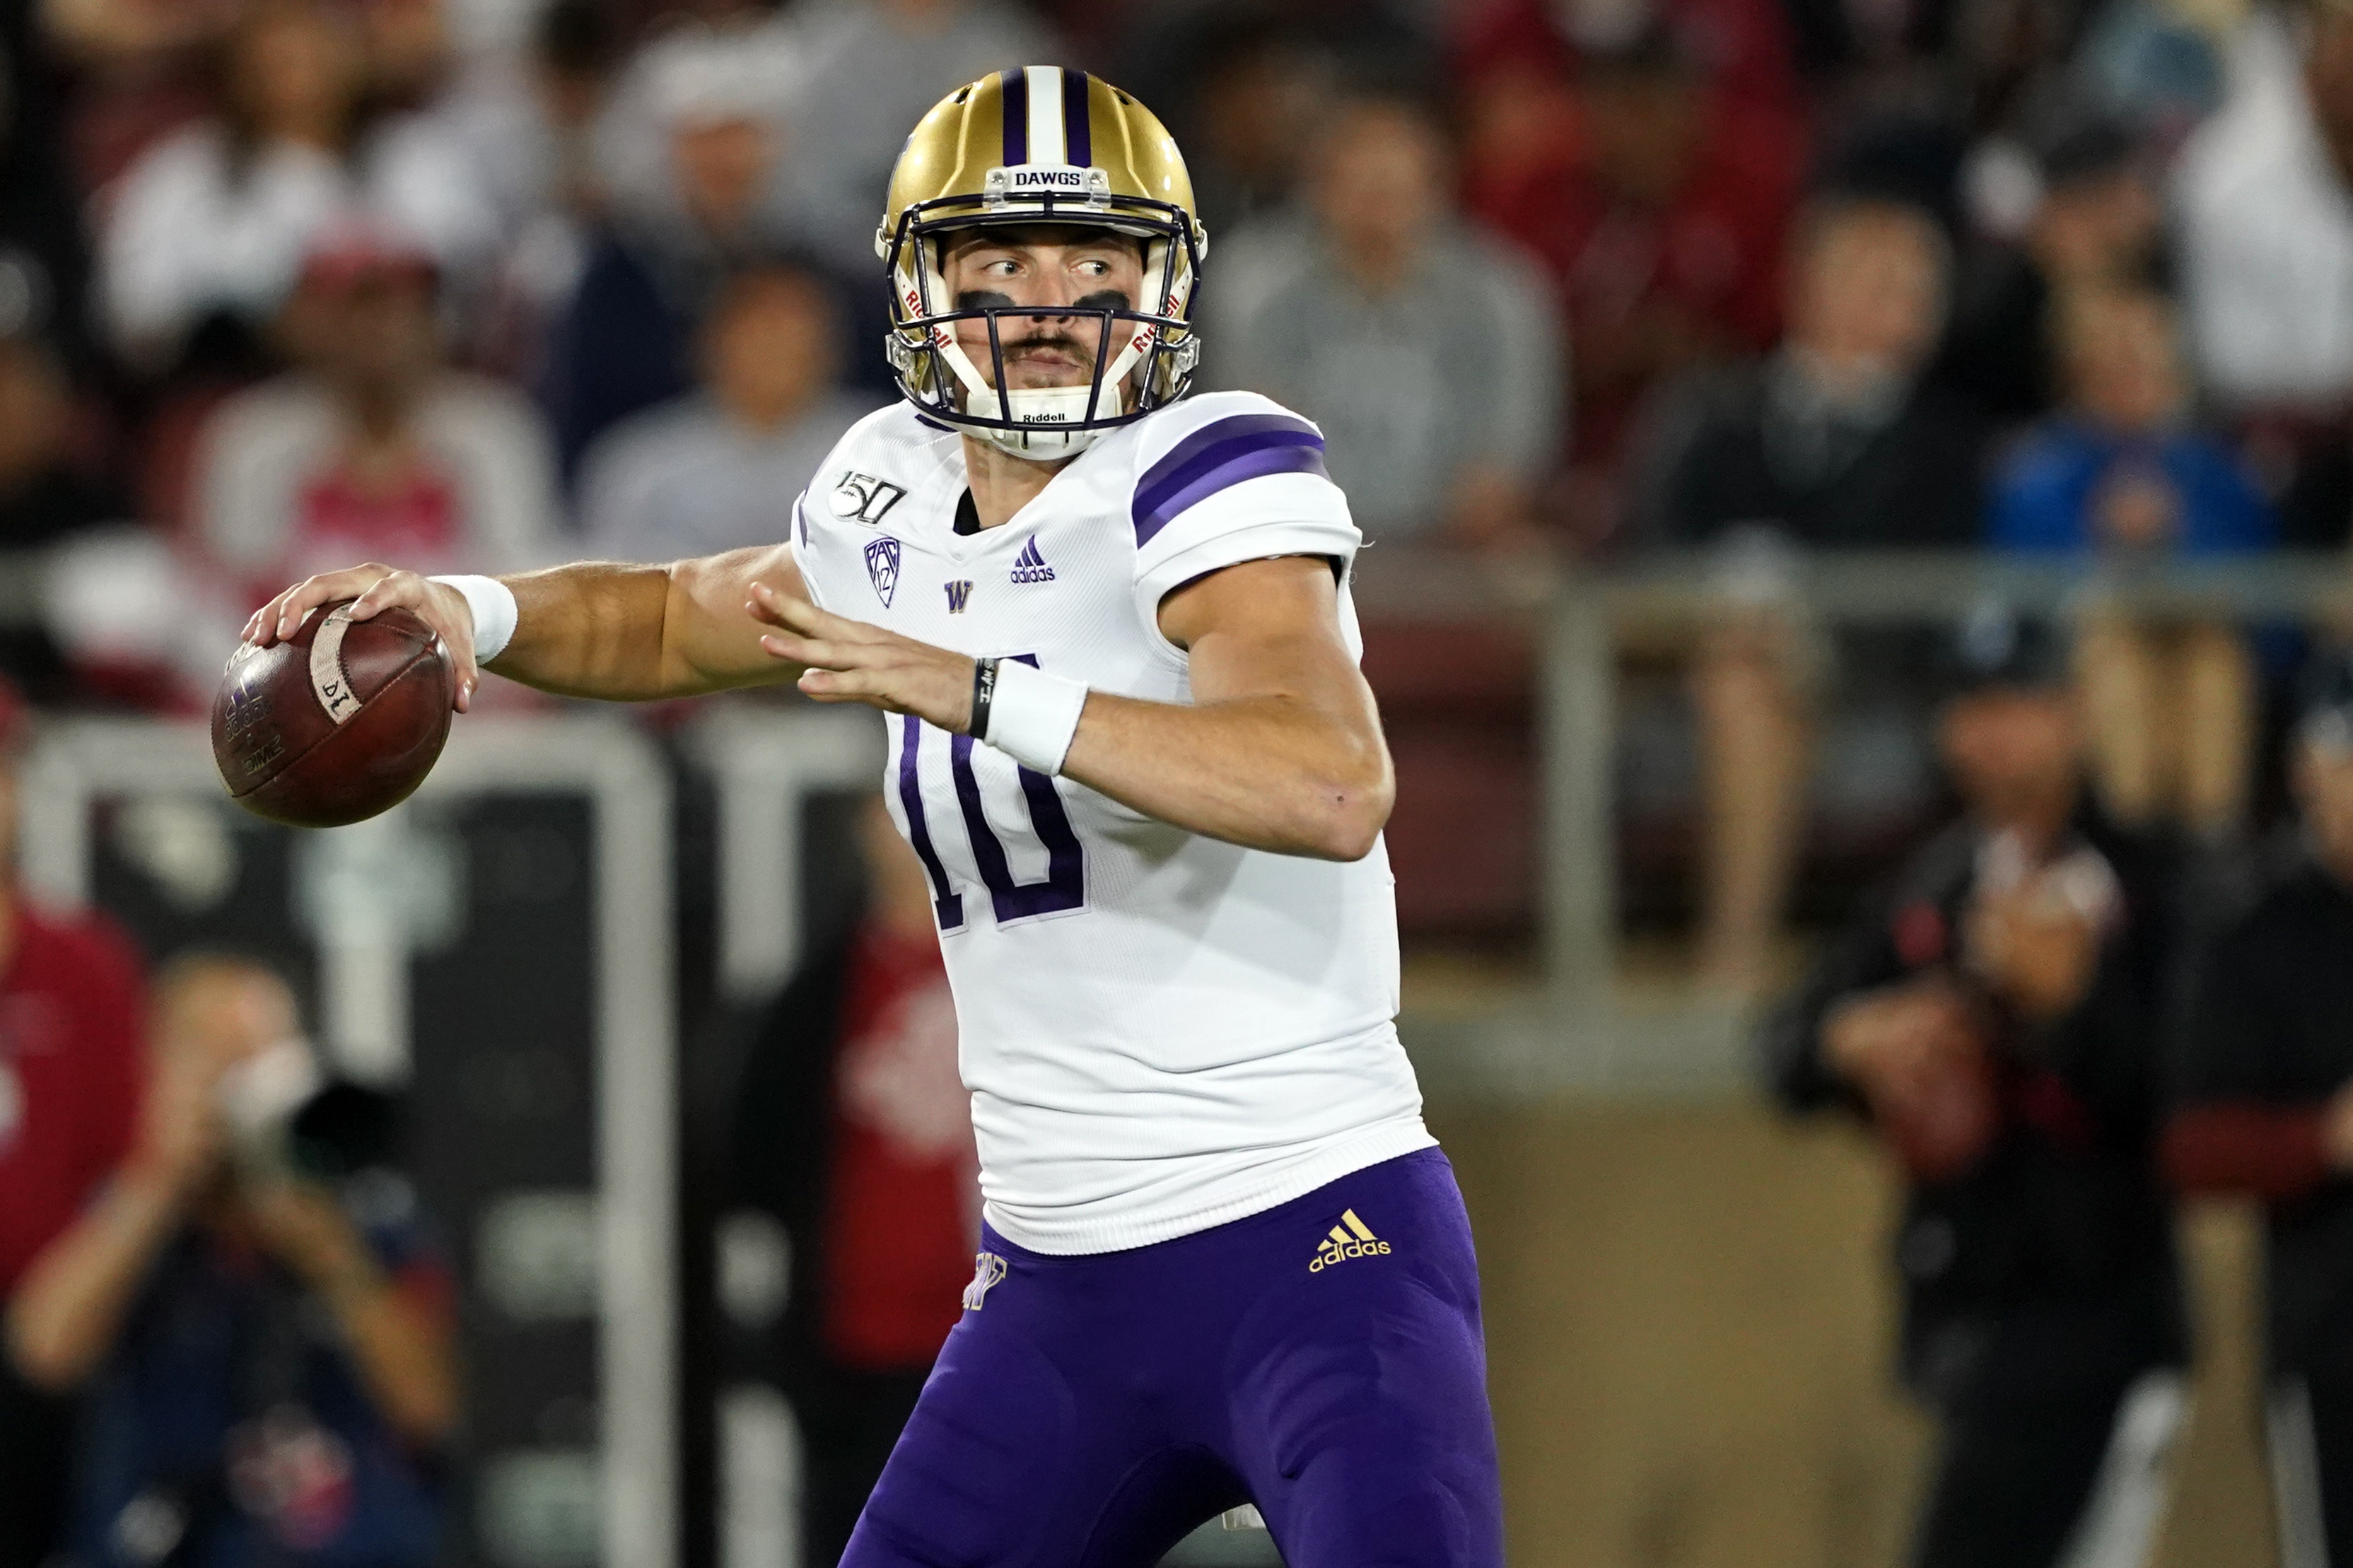 2020 NFL Mock Draft: Steelers Choose QB, Edge Depth With First Two Picks